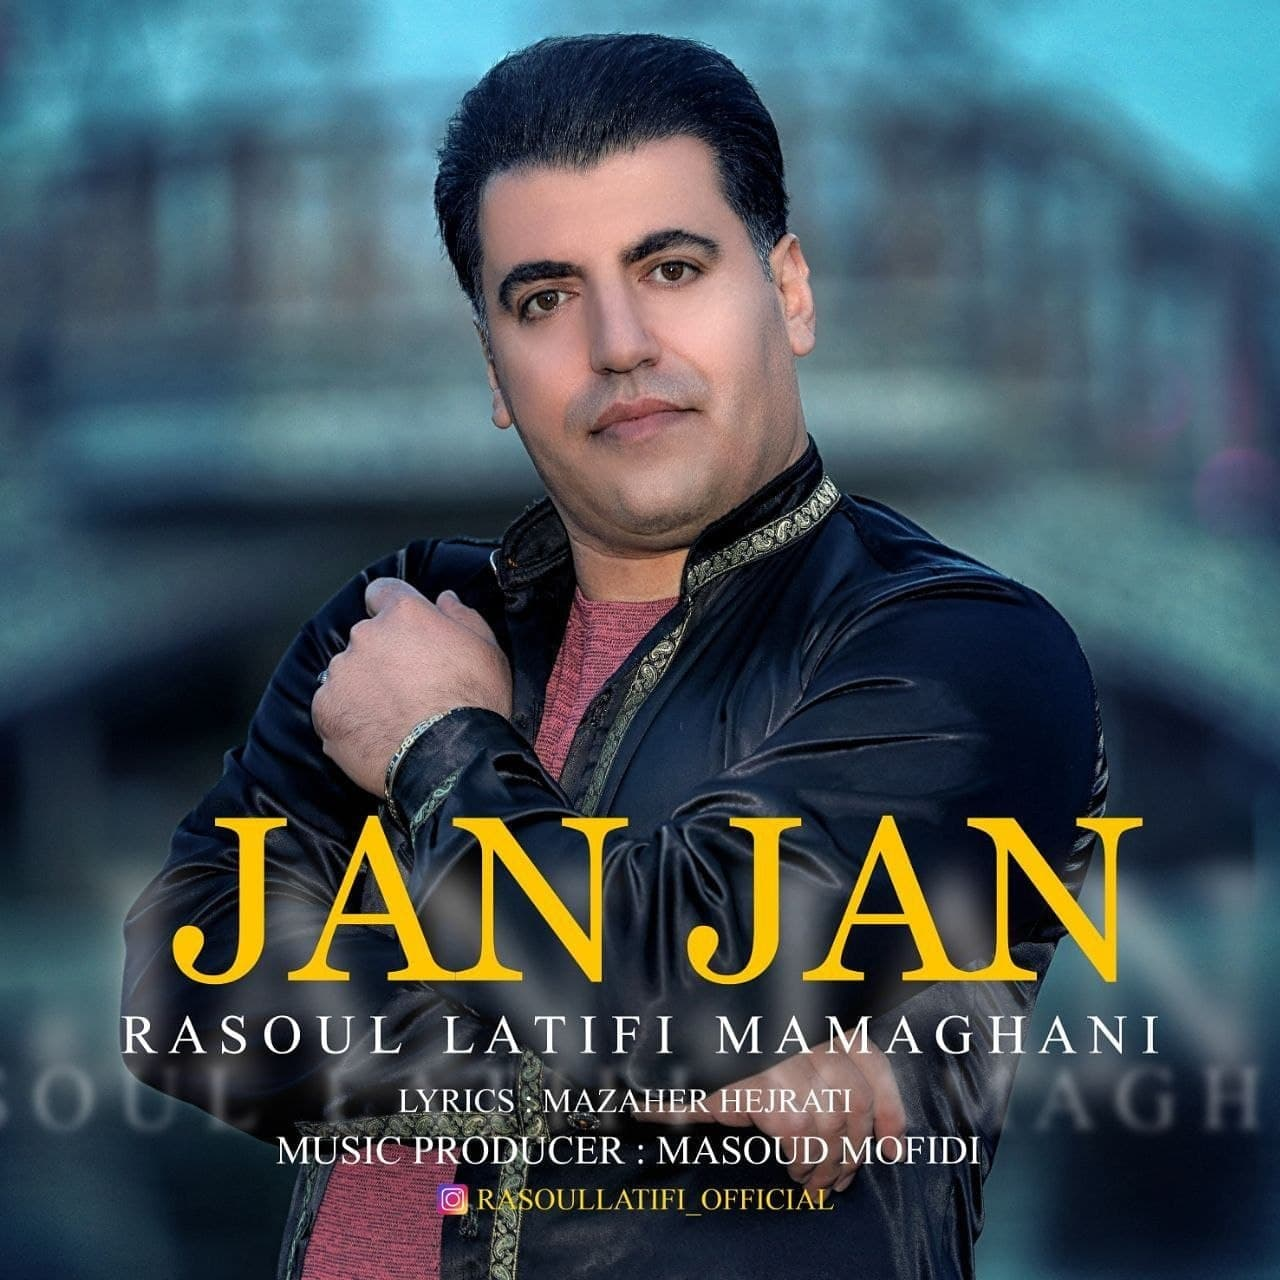 https://s16.picofile.com/file/8428738918/14Rasoul_Latifi_Mamaghani_Jan_Jan.jpg